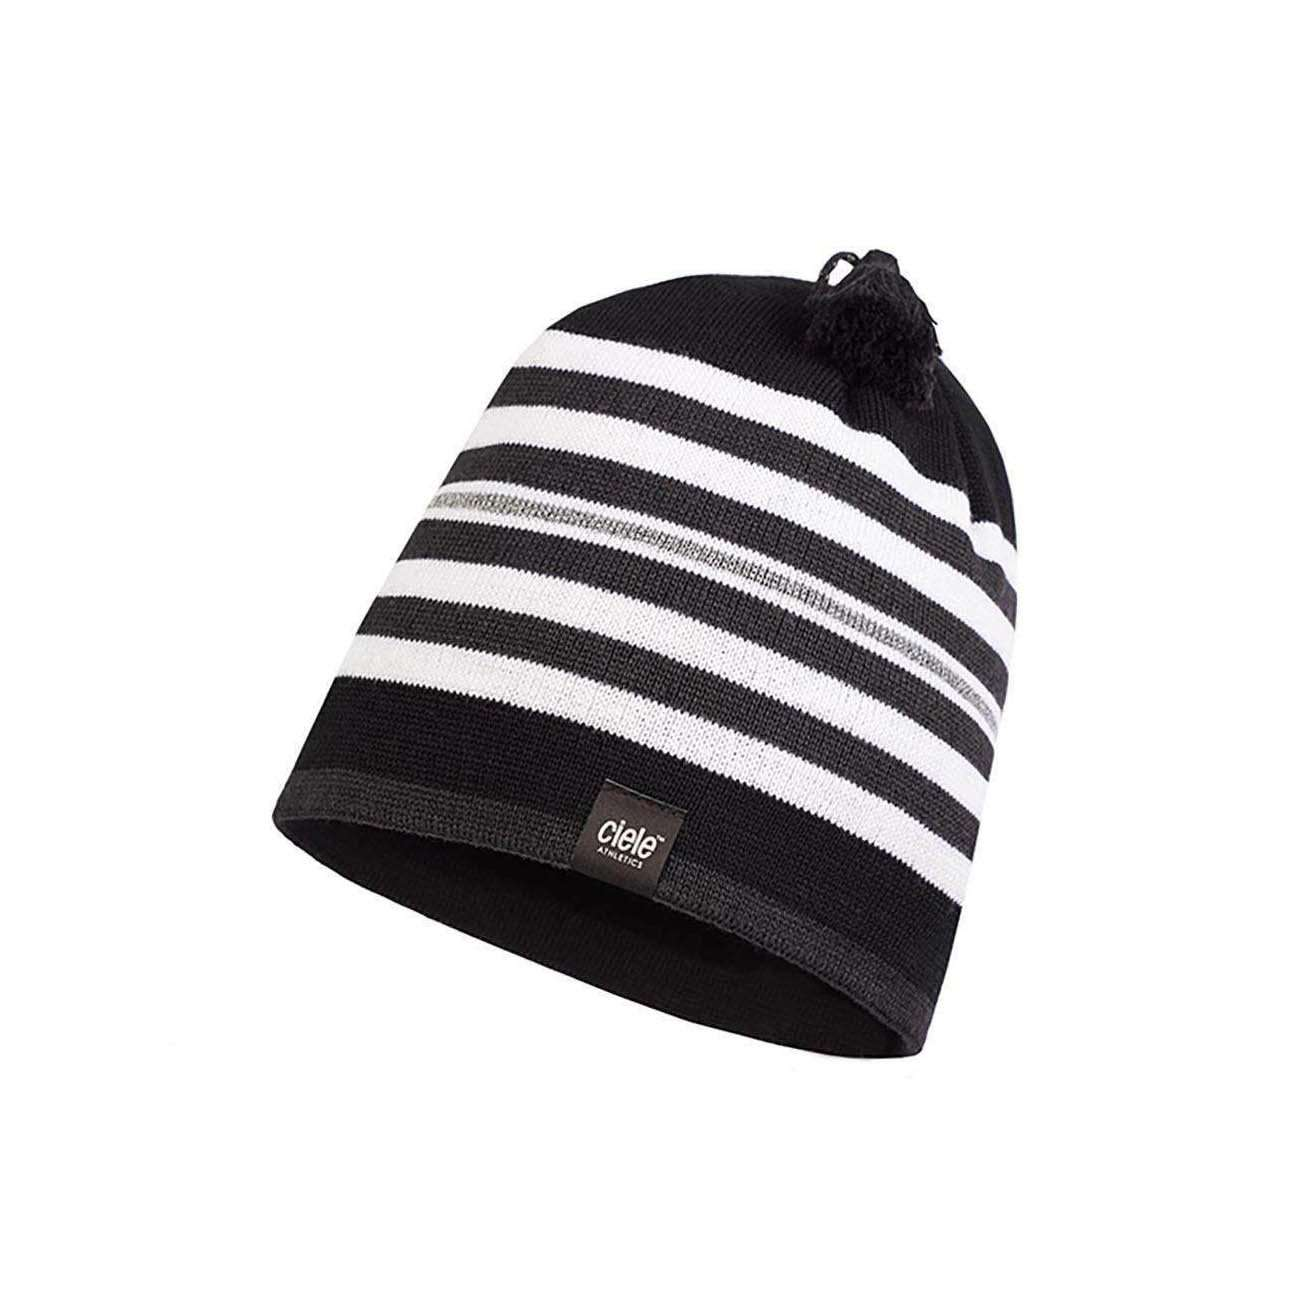 Ciele Whitaker Edition TRL Beanie - BlackToe Running Inc. - Toronto Running Specialty Store